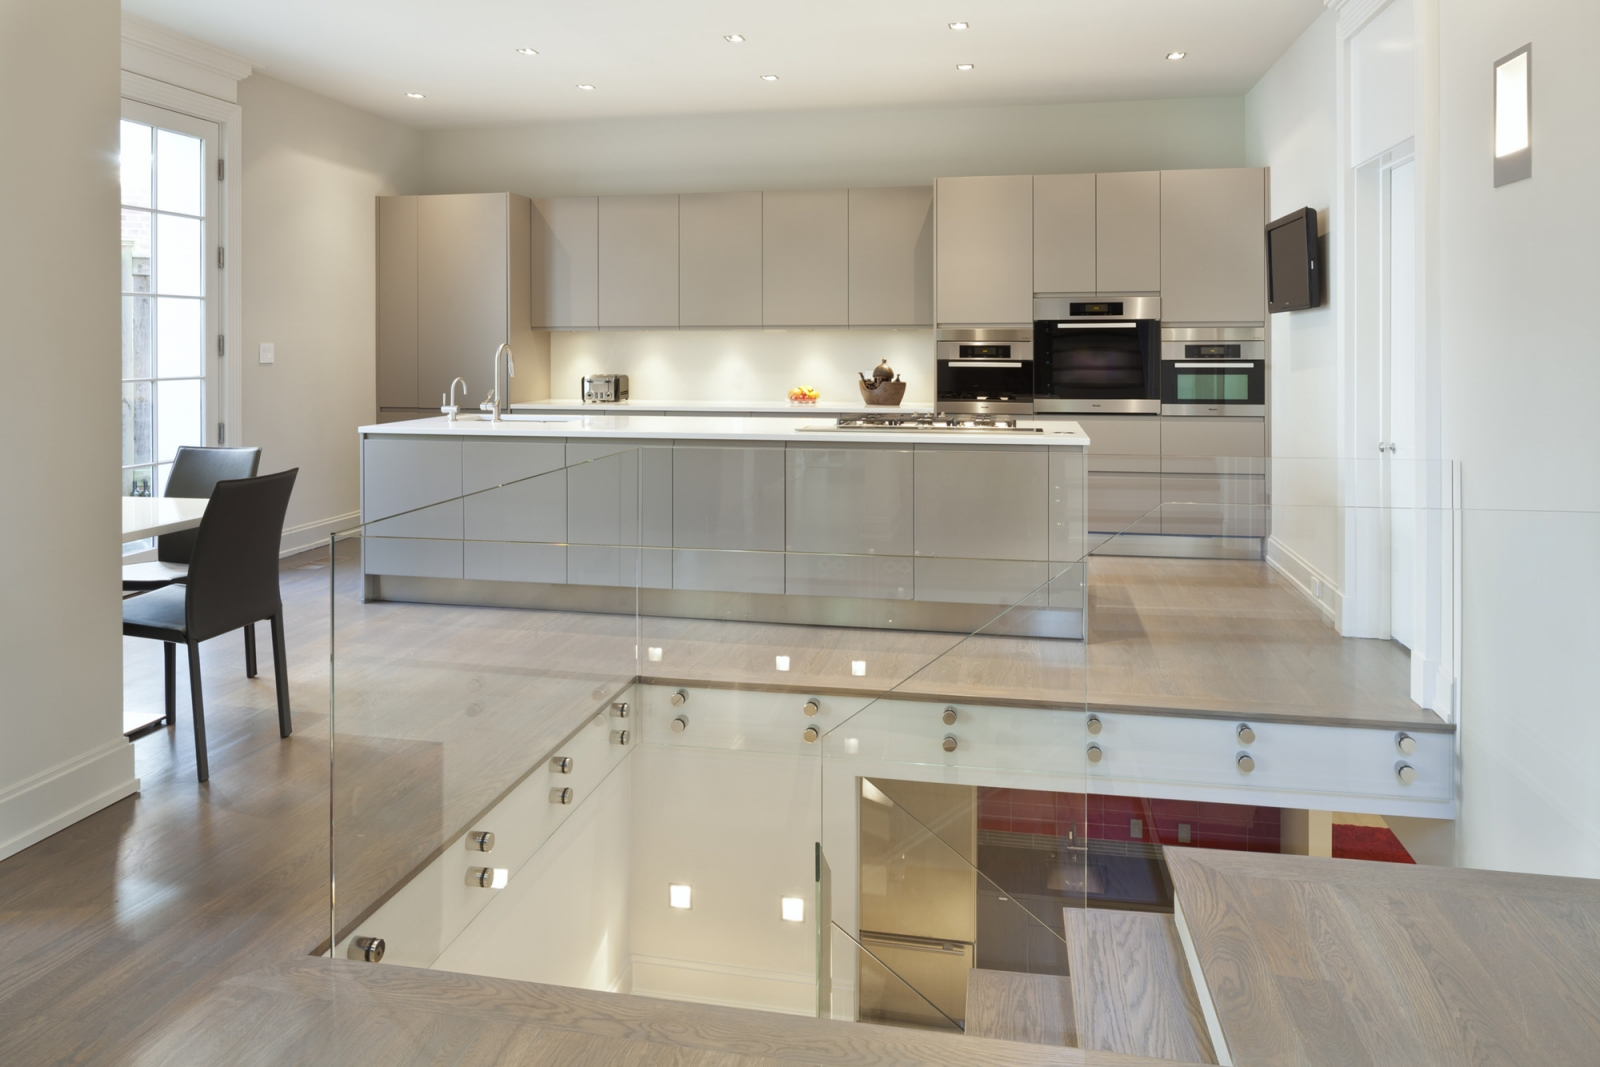 A contemporary glass staircase leads up to the kitchen.